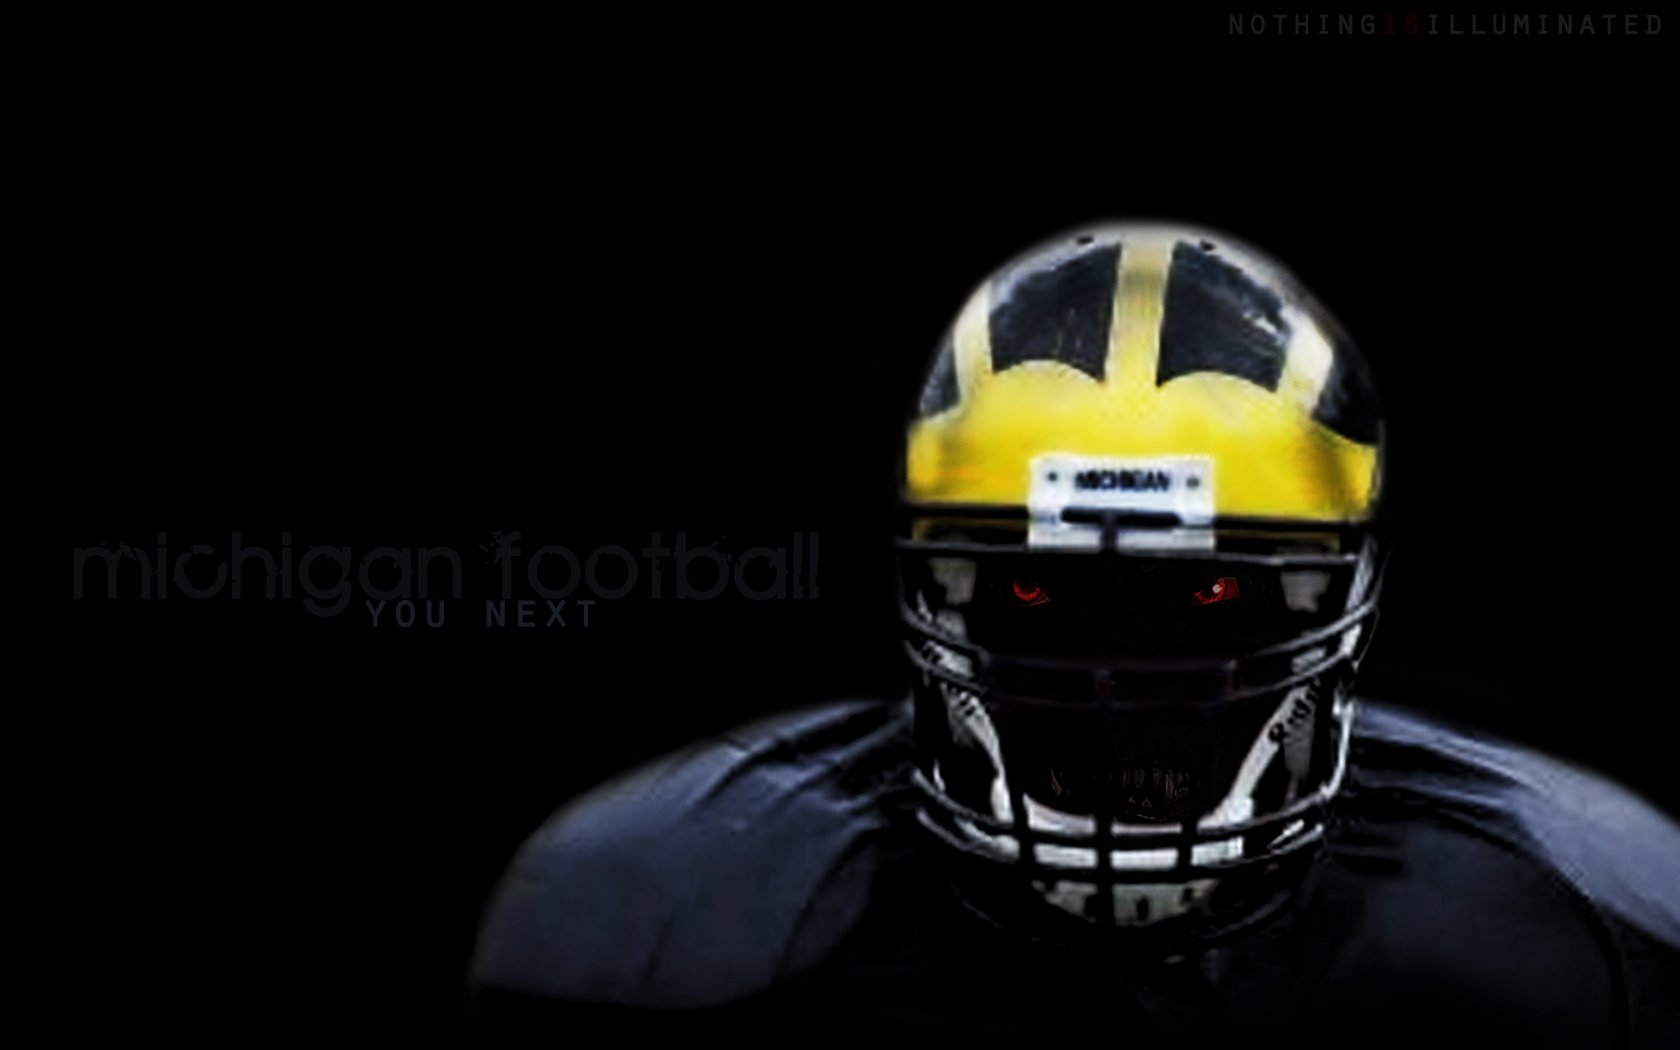 university of michigan screensaver wallpaper wallpapersafari